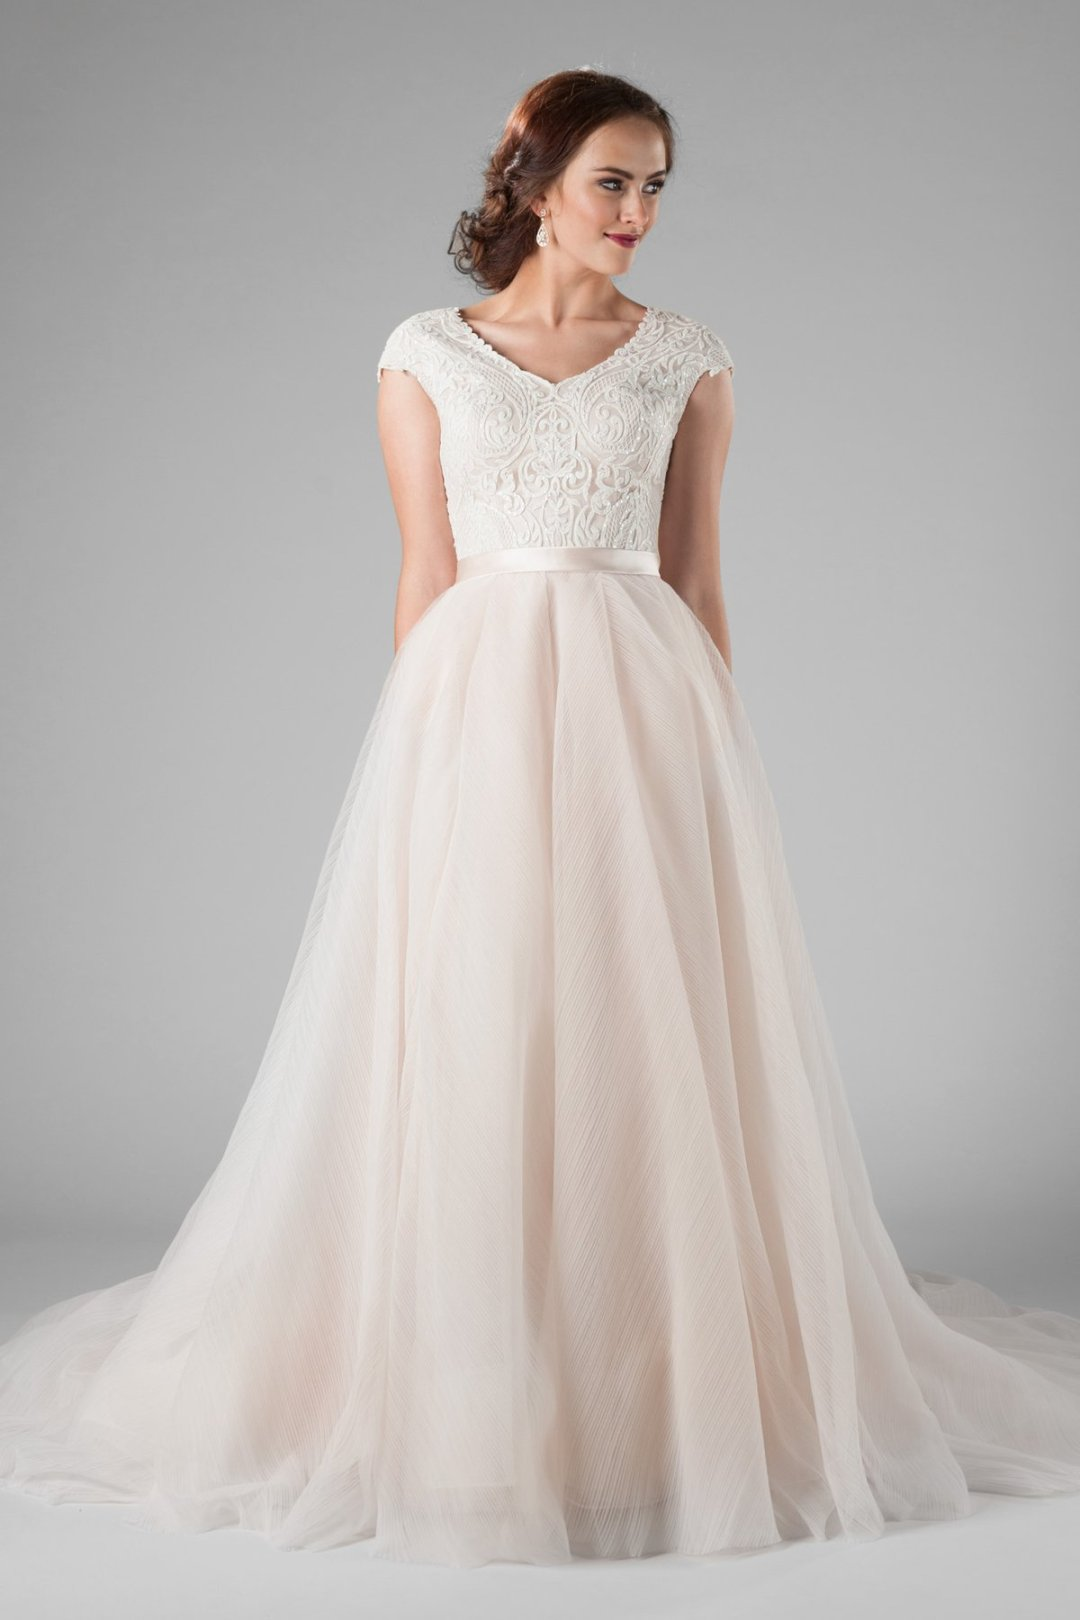 25 Modest Ball Gown Wedding Dresses - 8